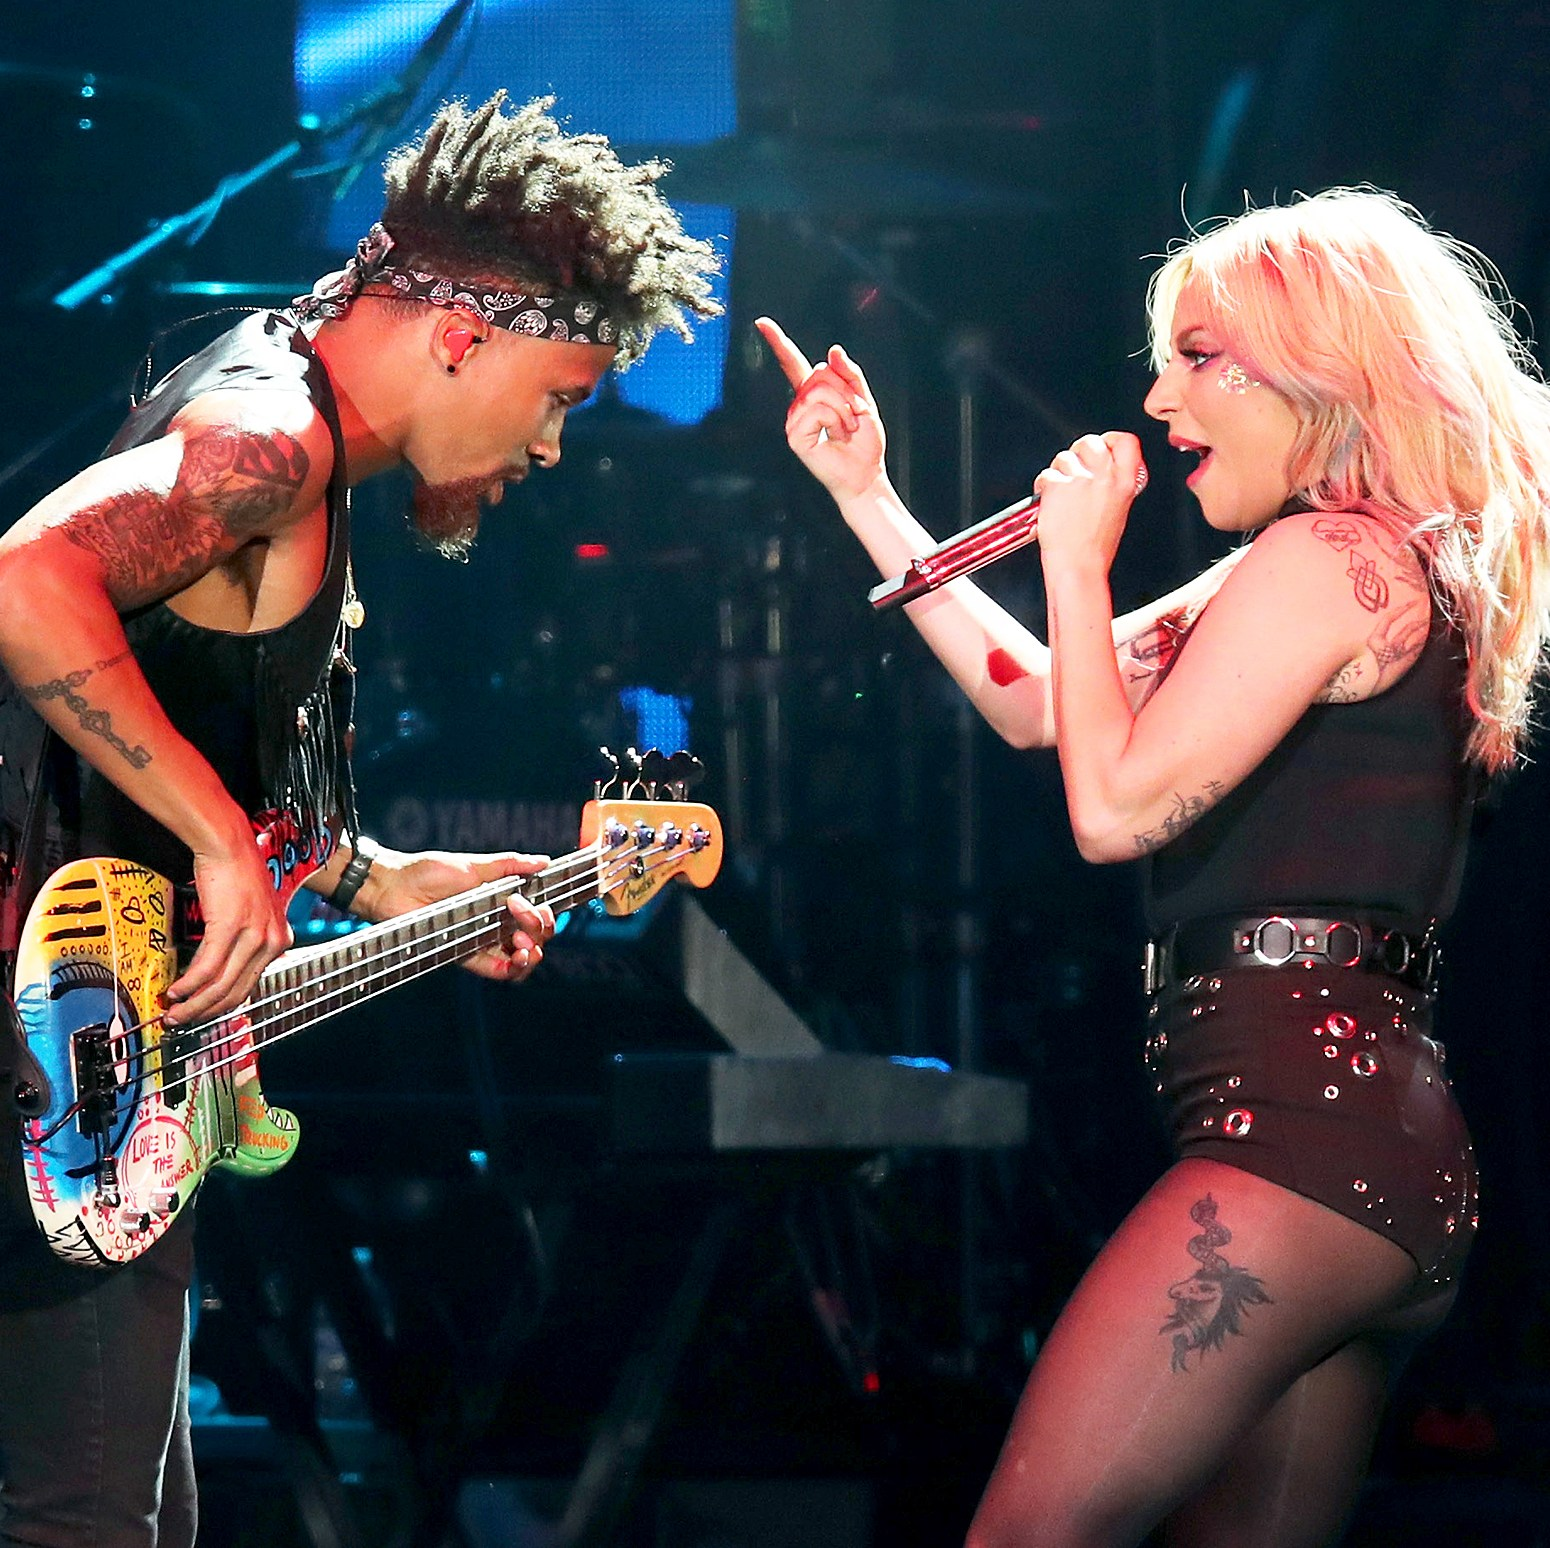 Jonny Goood and Lady Gaga performs during the 2017 Coachella Valley Music & Arts Festival at the Empire Polo Club in Indio, California.